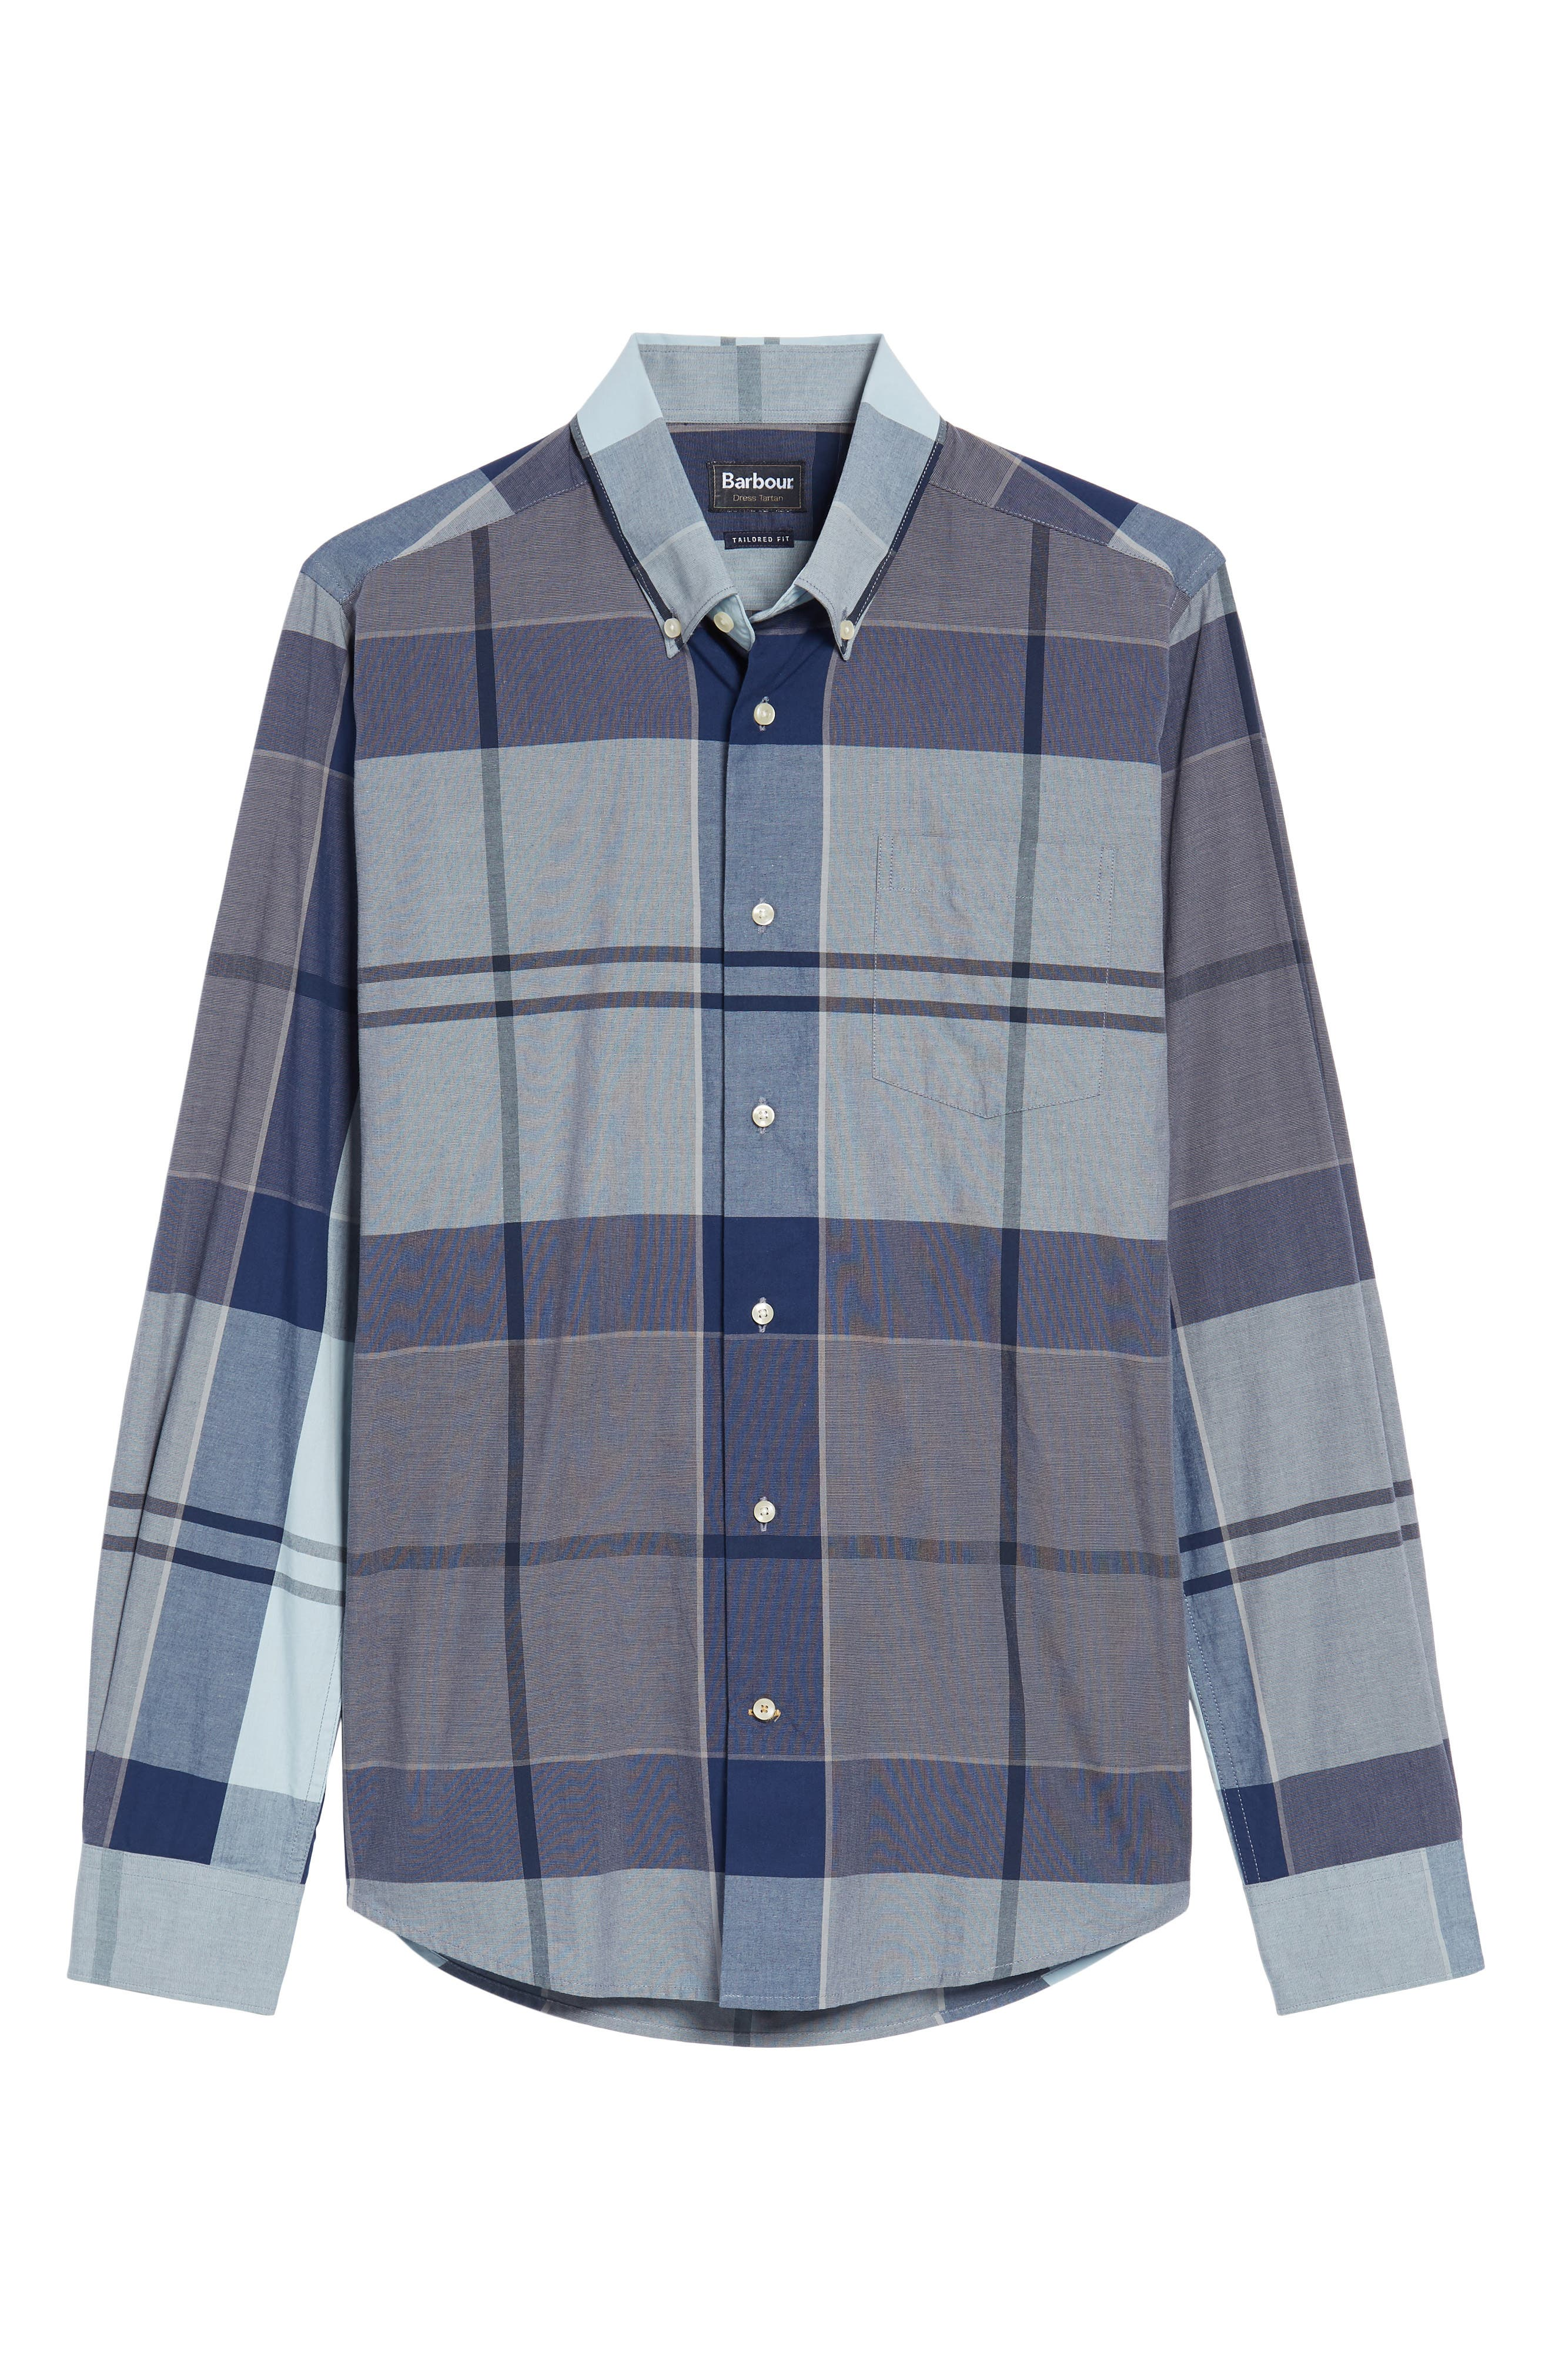 Arndale Tailored Fit Plaid Sport Shirt,                             Alternate thumbnail 6, color,                             Chambray